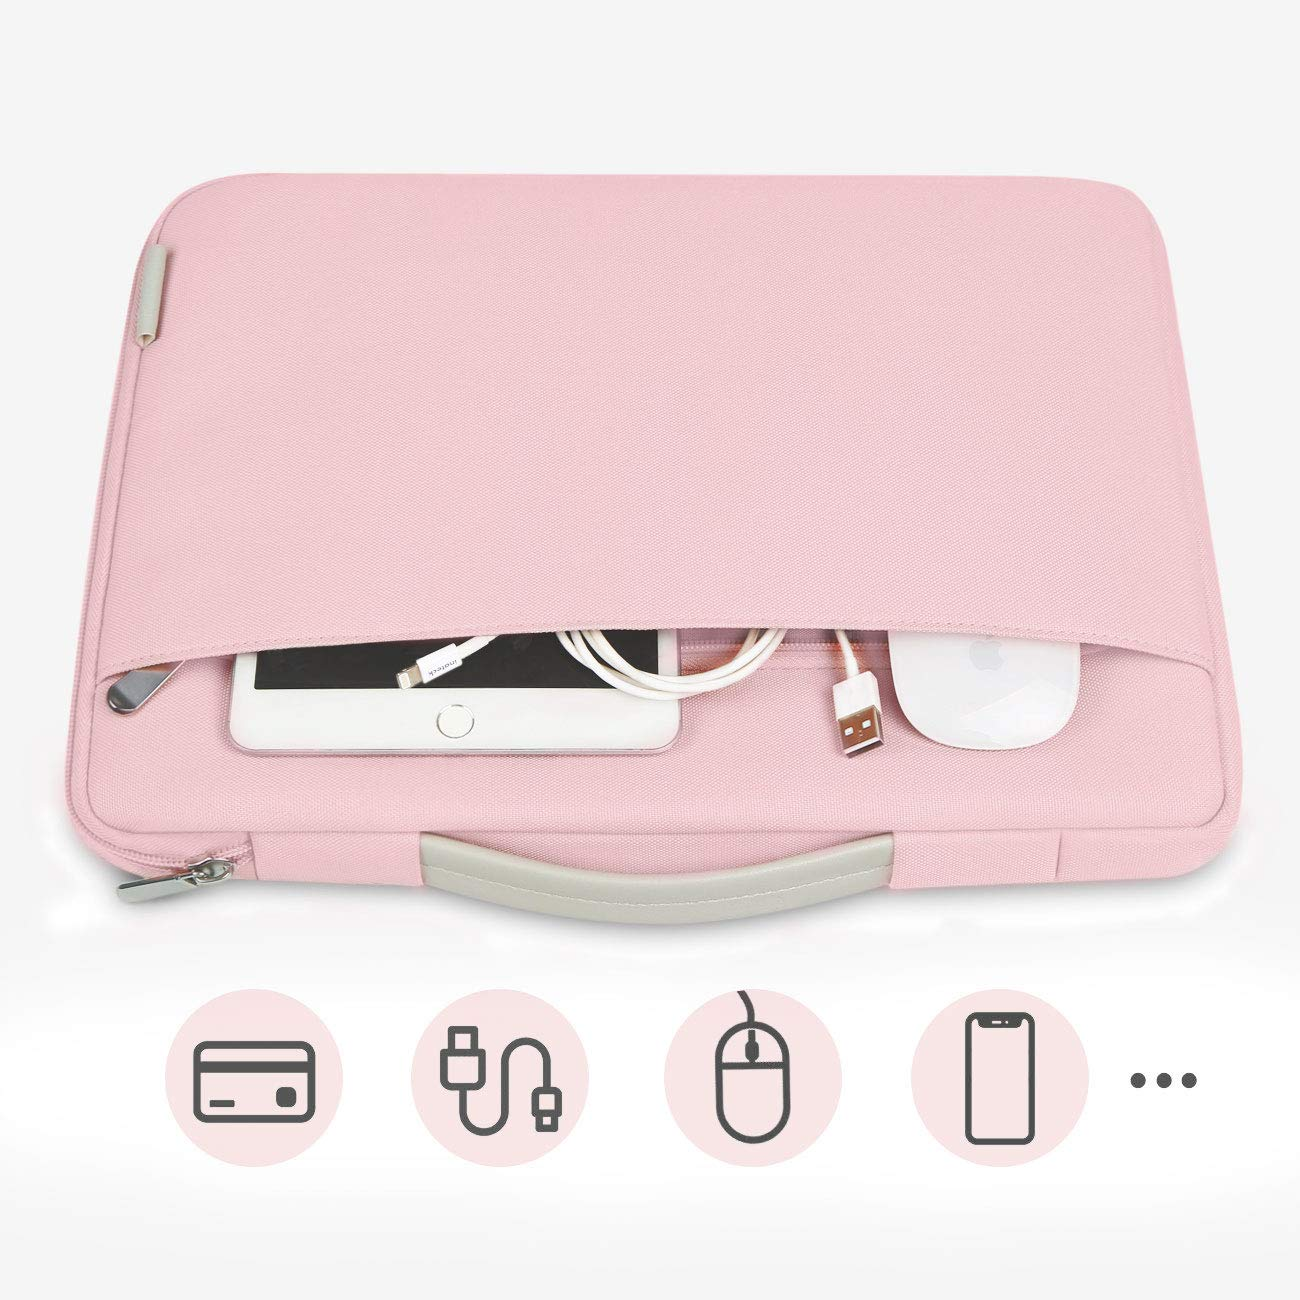 Inateck 13-13.3 Inch MacBook Air/MacBook Pro(Retina) Laptop Sleeve Case LB1302, Pink